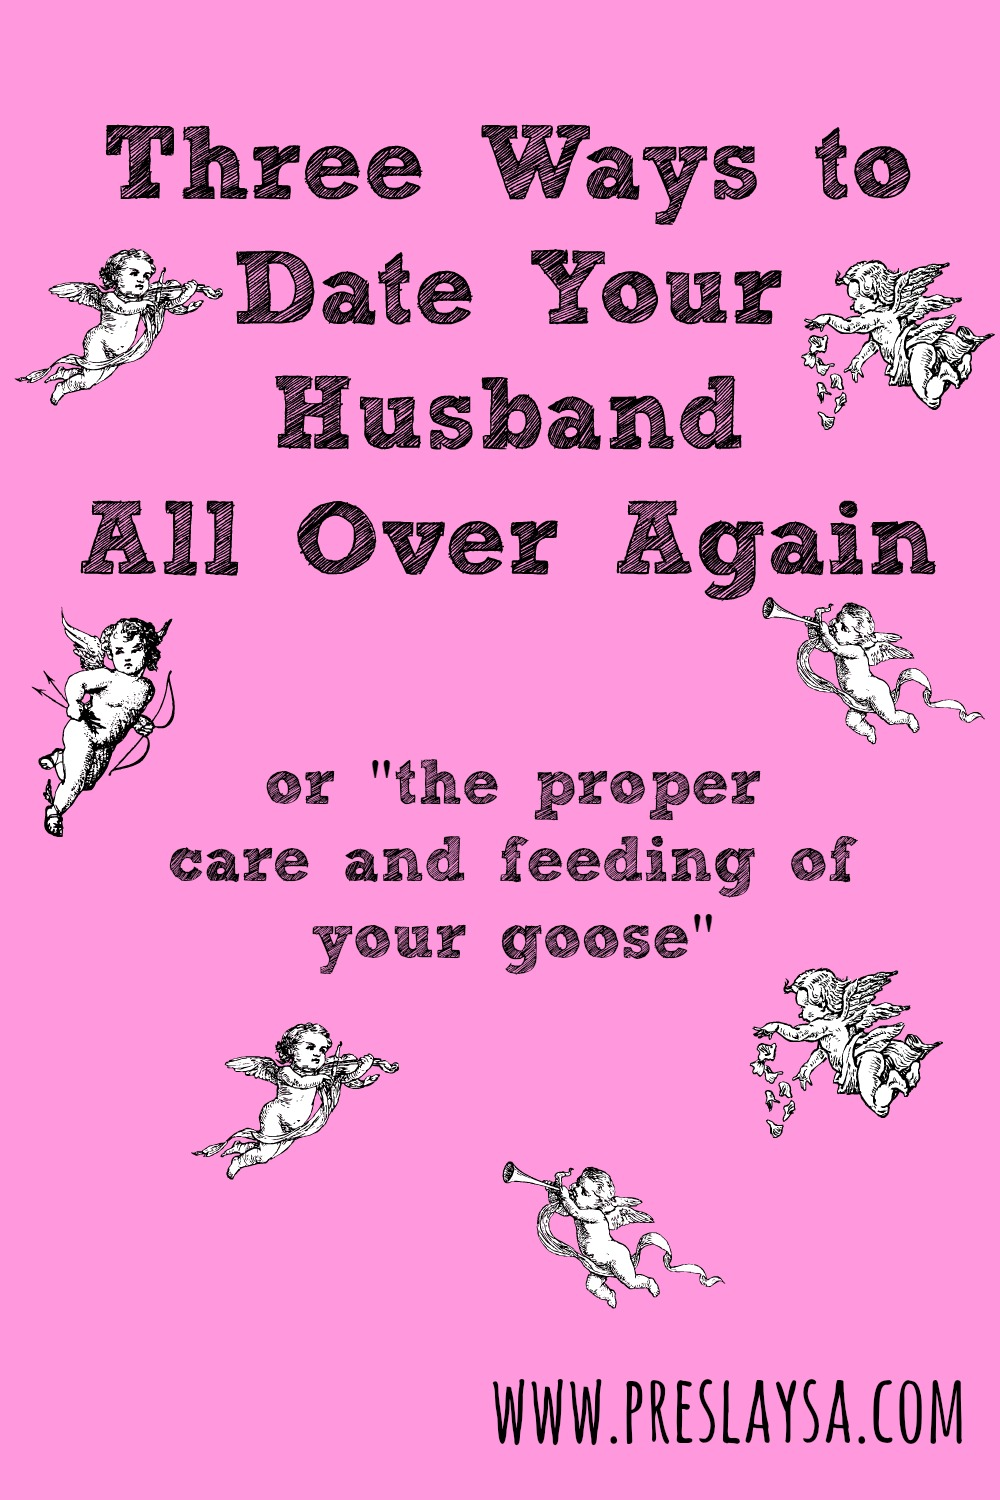 Dating your husband again